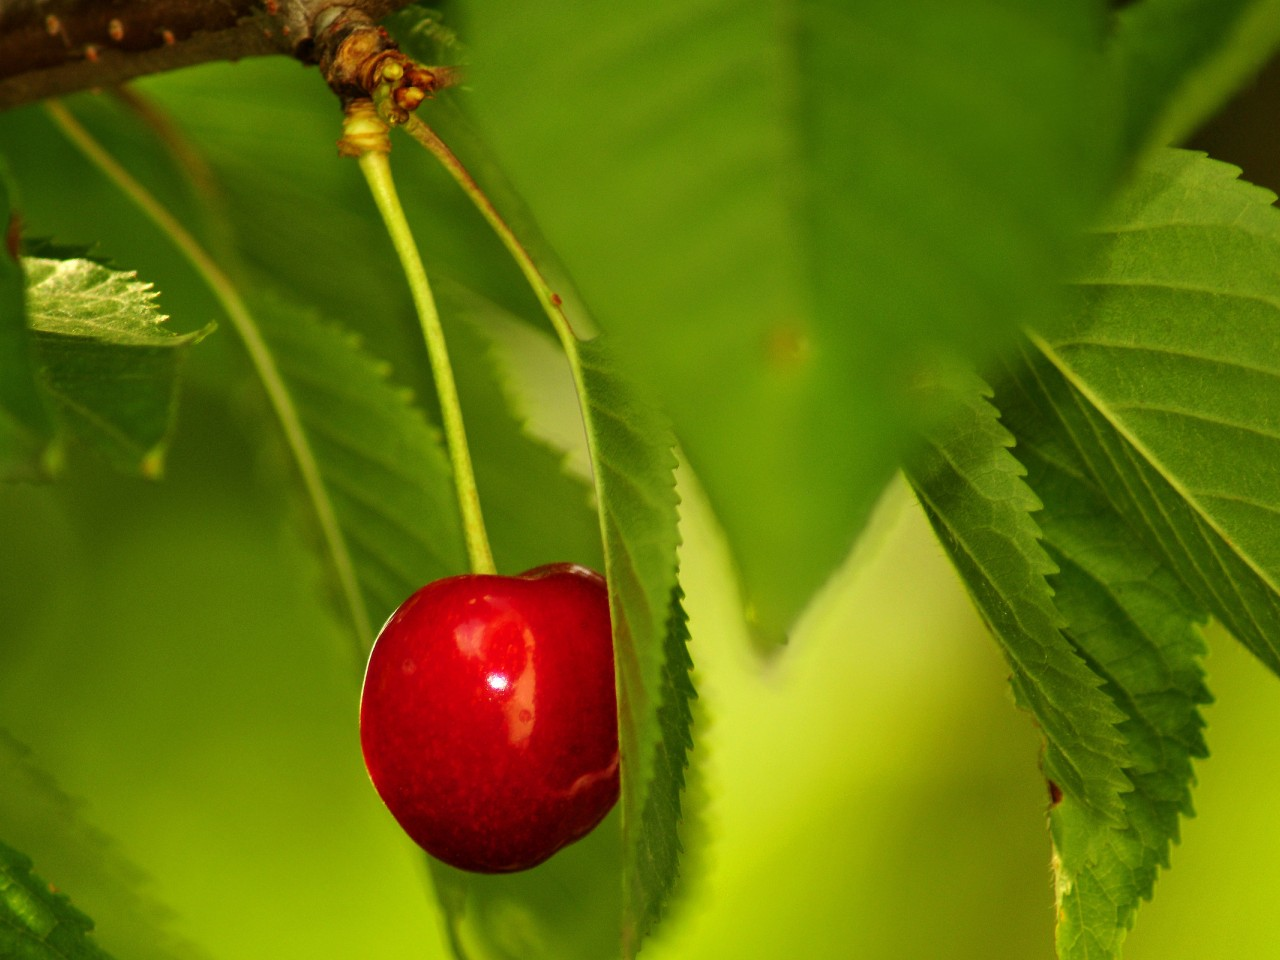 http://2.bp.blogspot.com/-wJq63xQV4Uk/Tv8SVm561iI/AAAAAAAAB9E/scA9Vm7LcaA/s1600/Cherry-red-nature-food-1280x960.jpg